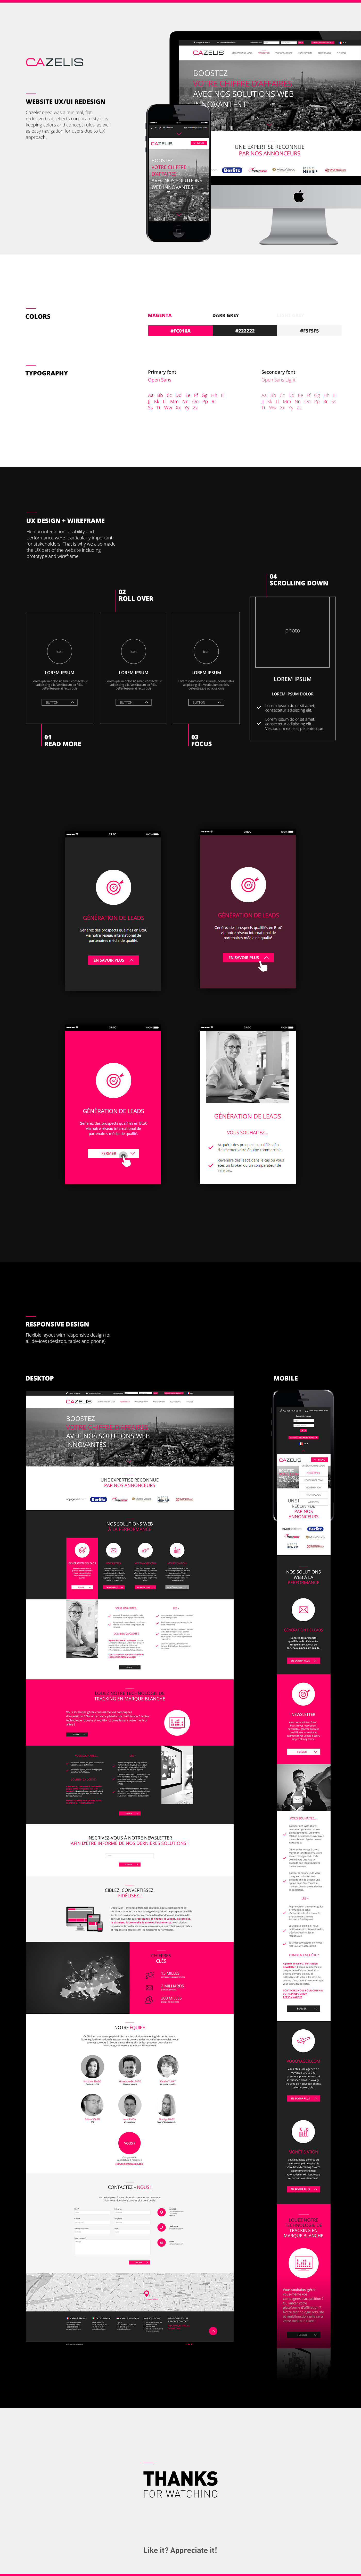 redesign graphic design  online marketing agency minimal design Usability test ux user experience UI